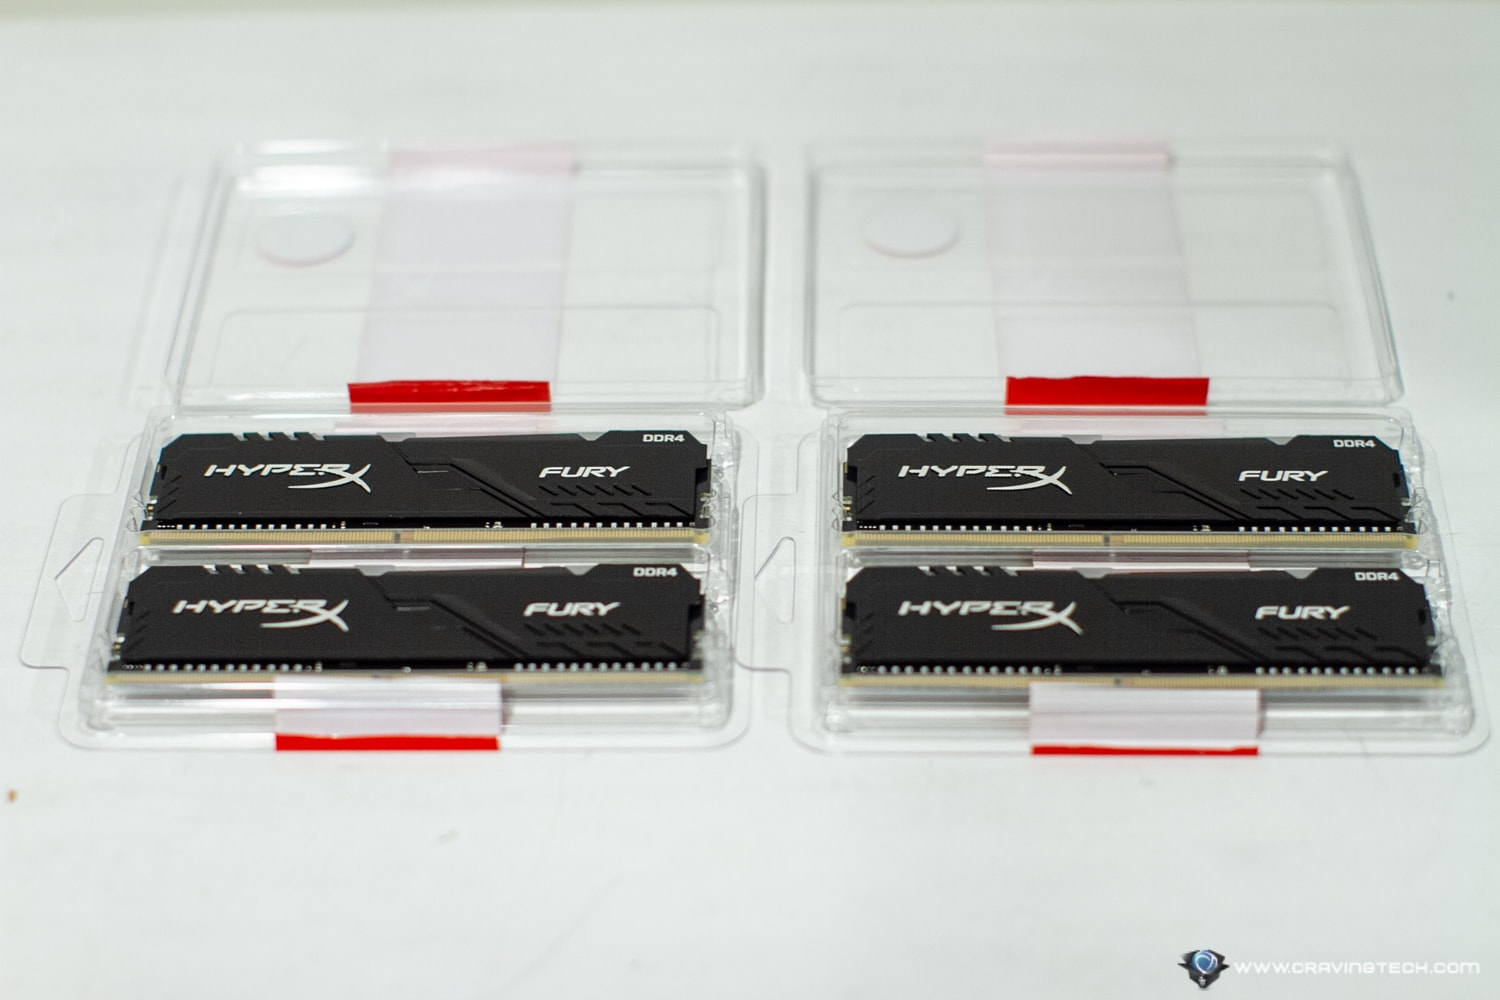 HyperX Fury DDR4 RGB Kit